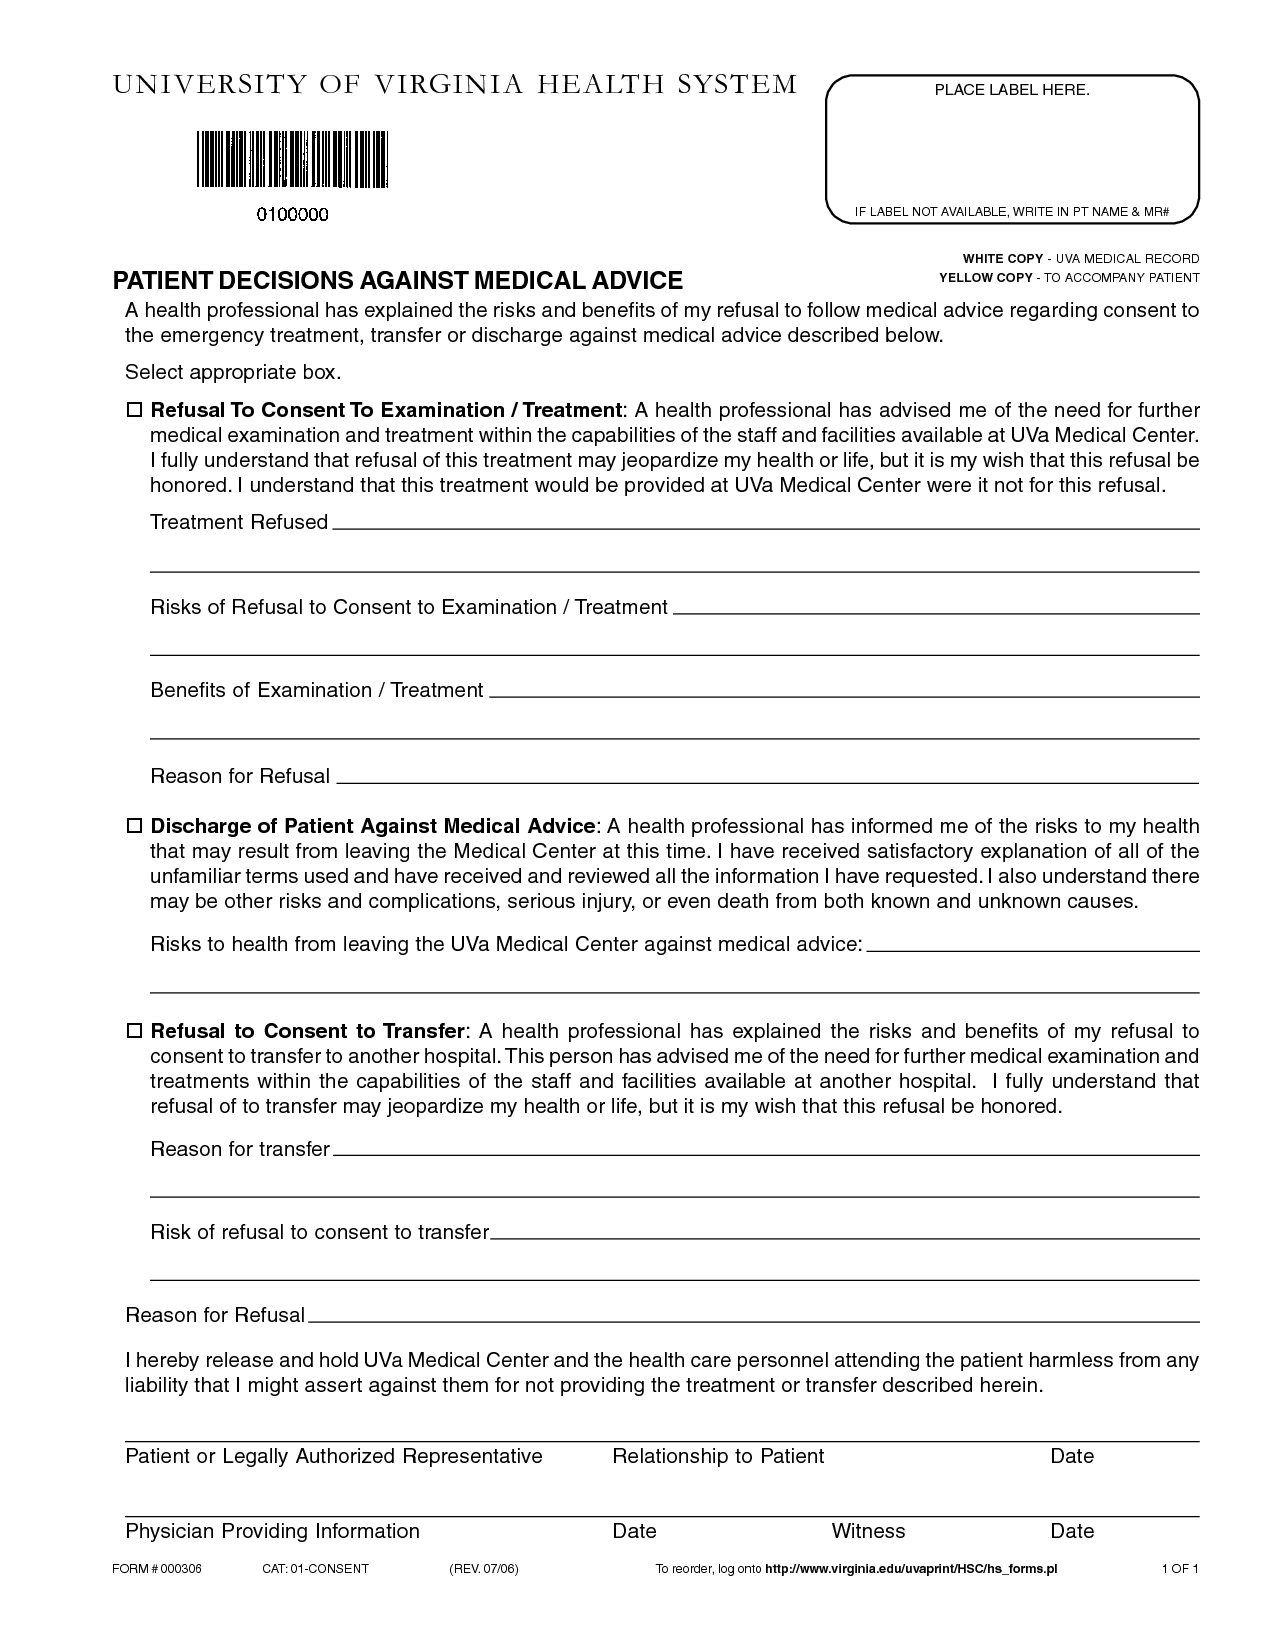 Blank Printable Hospital Discharge Forms